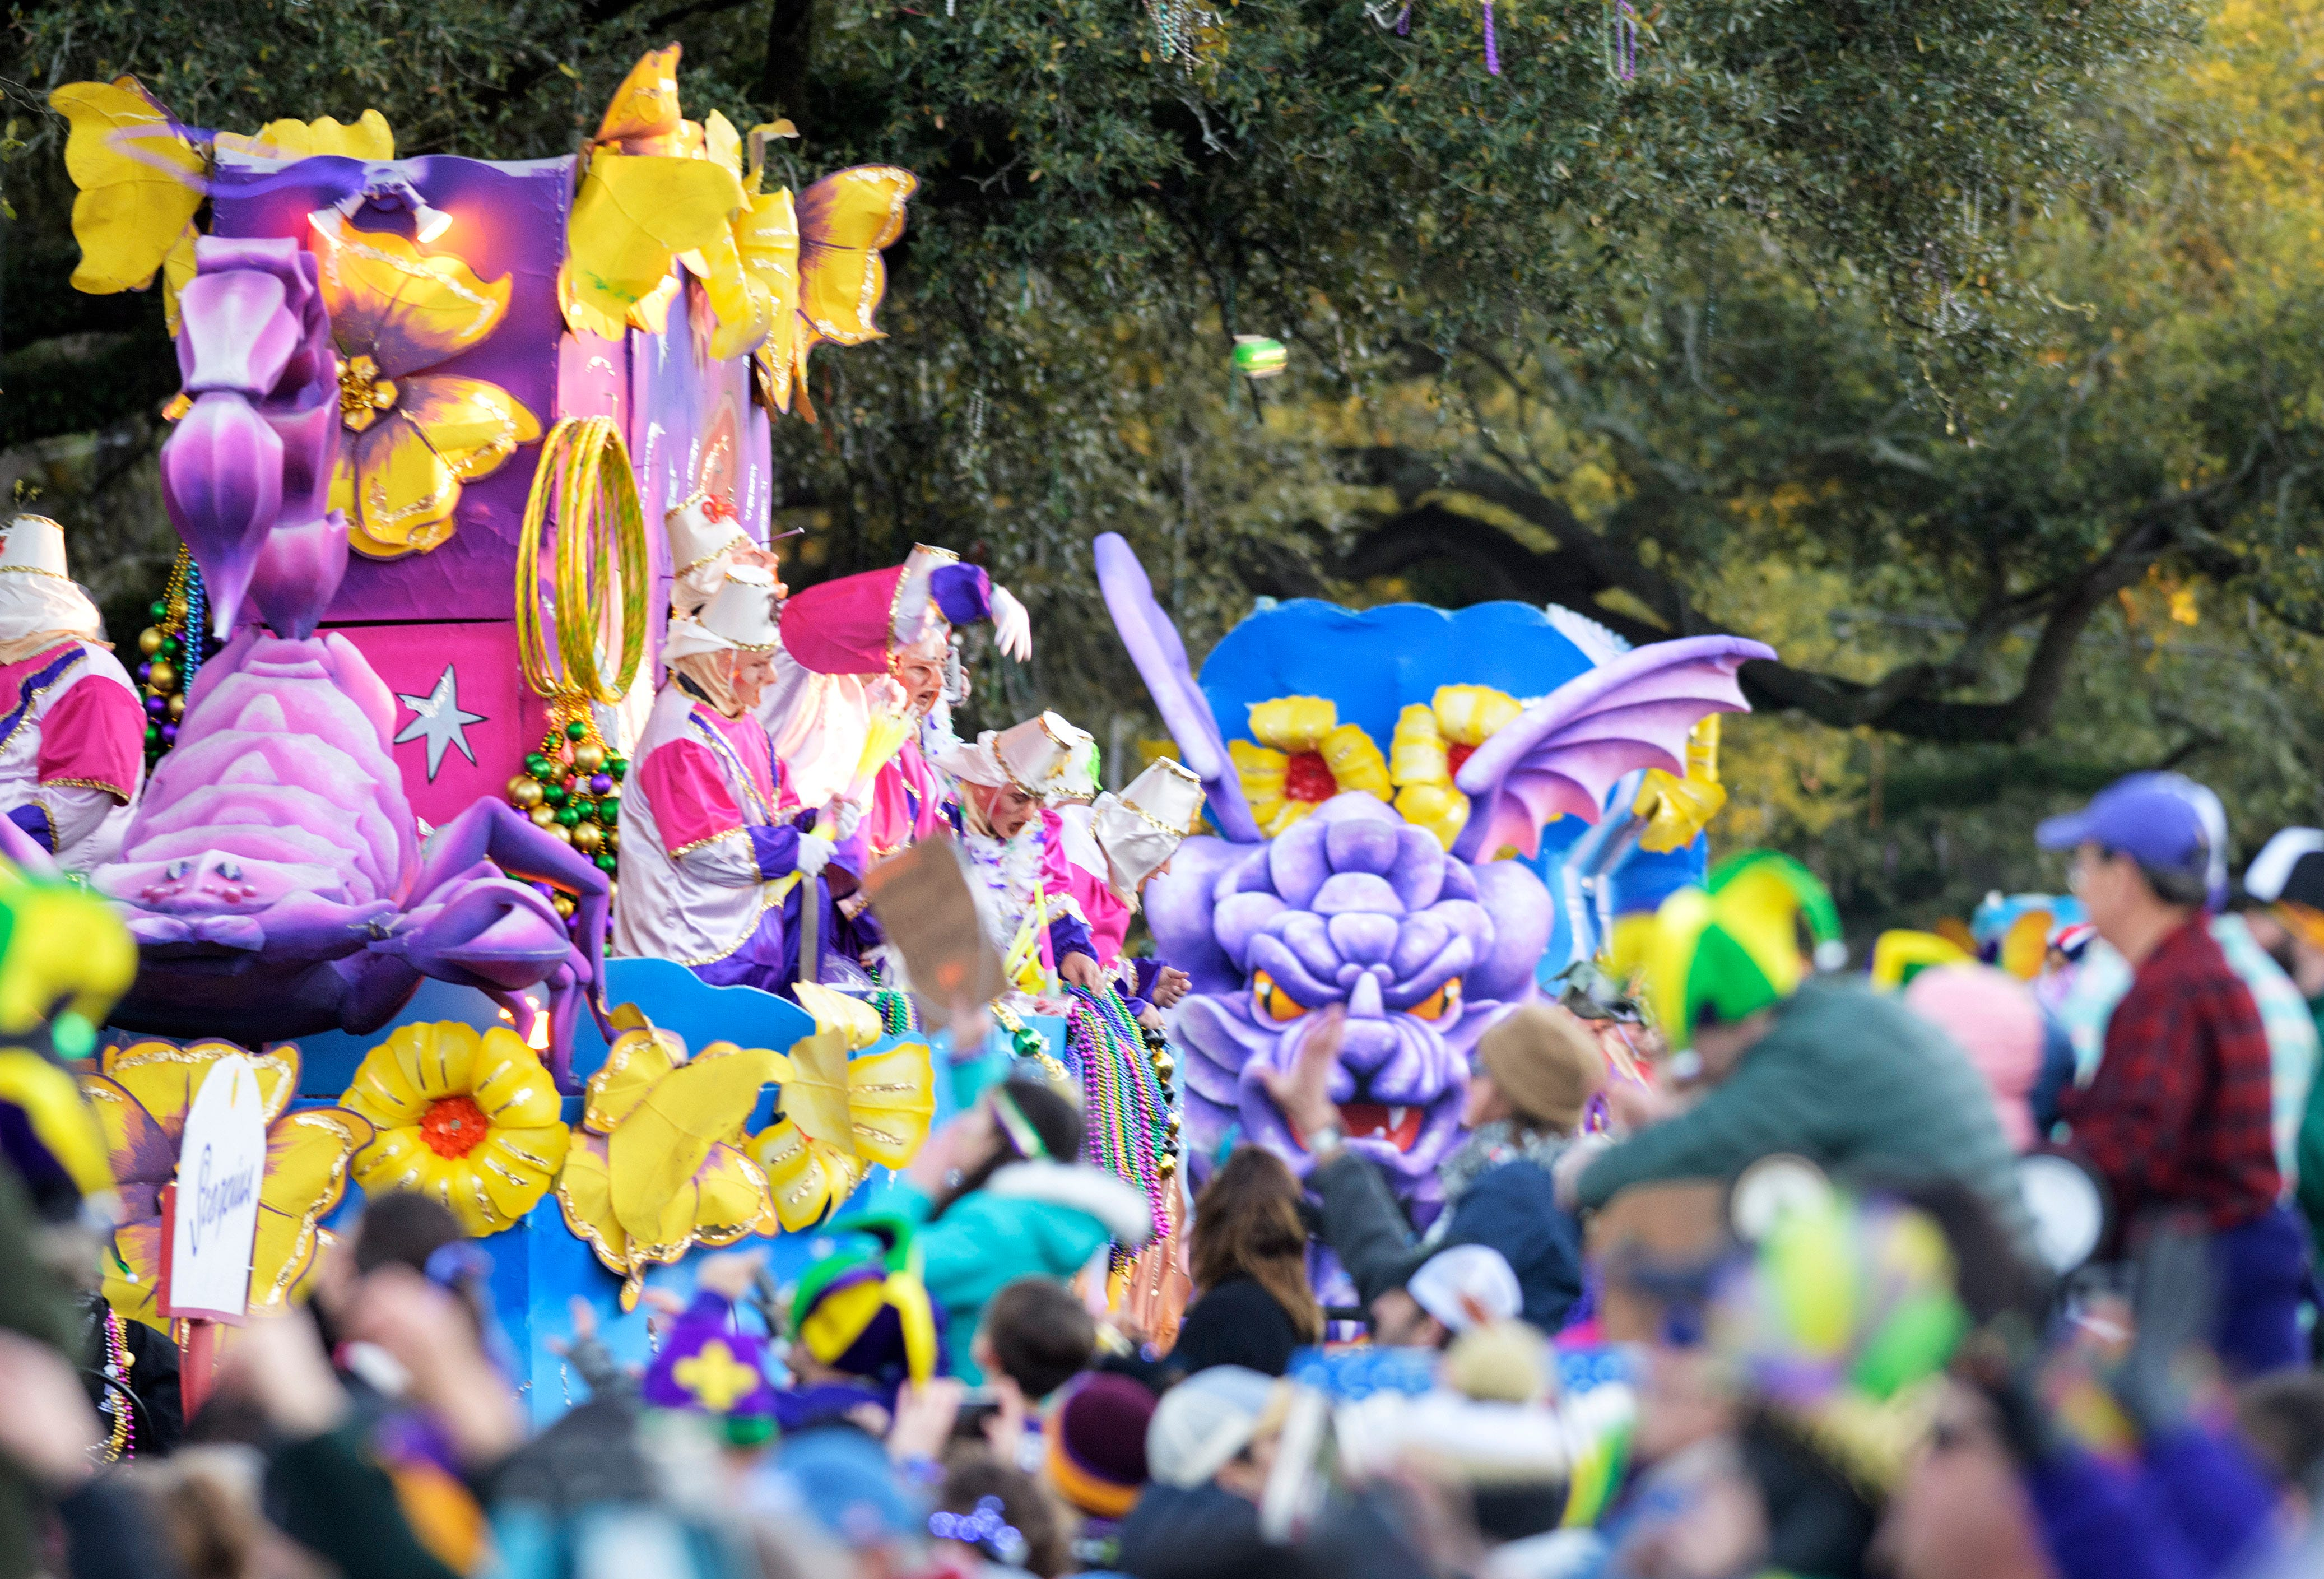 Mardi Gras photos: New Orleans alive with parades, costumes